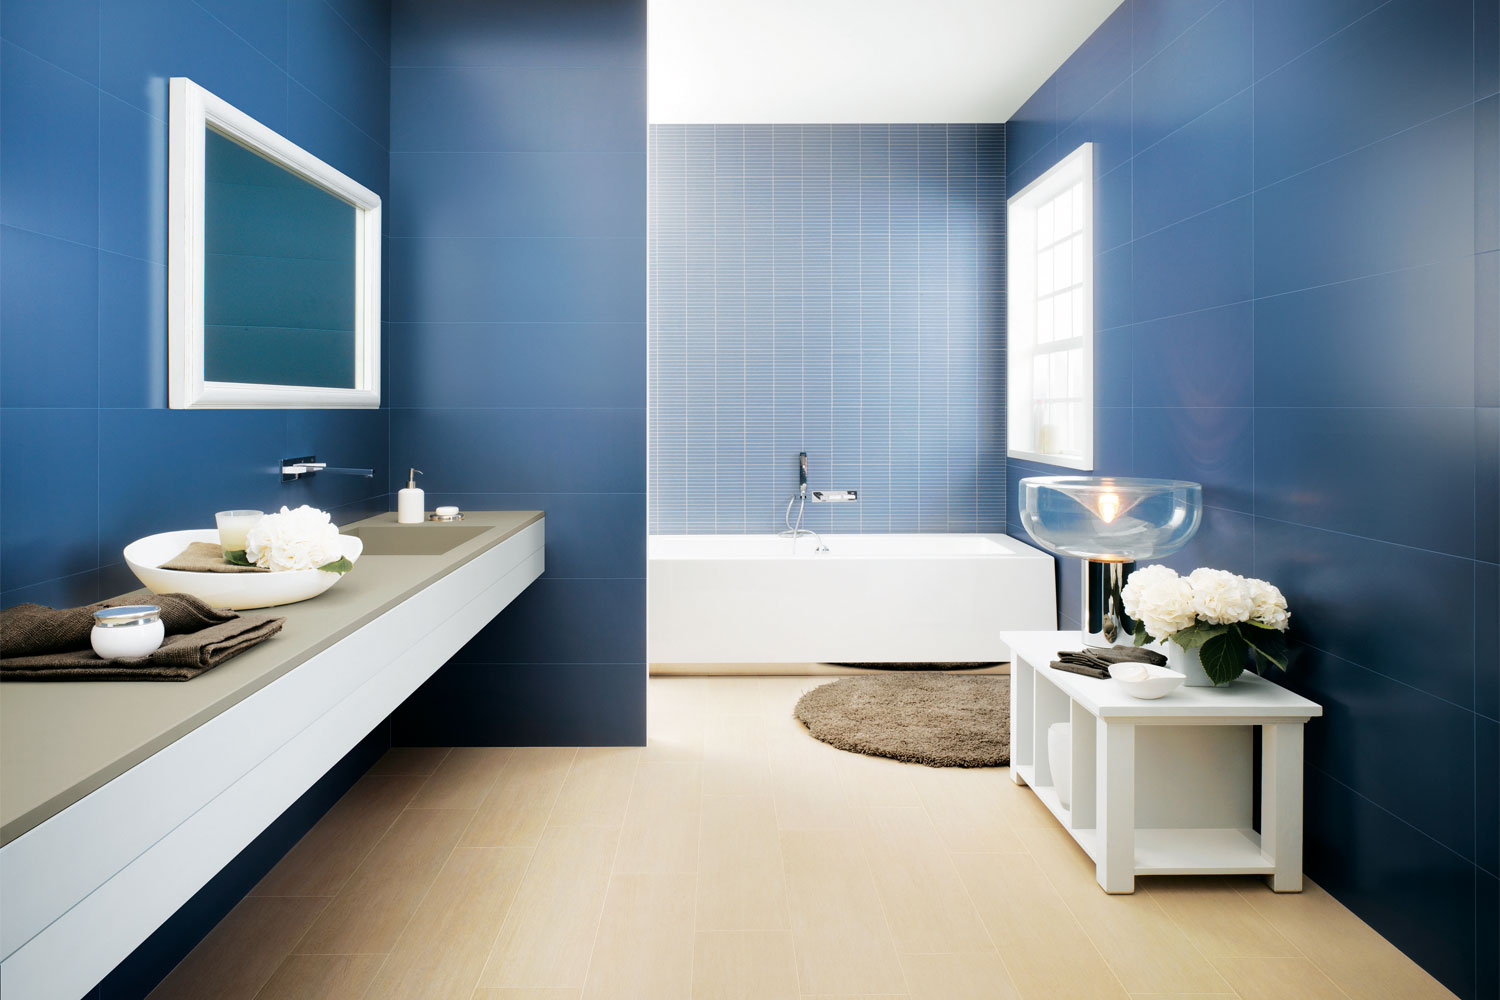 5 simple ways to spruce up your bathroom